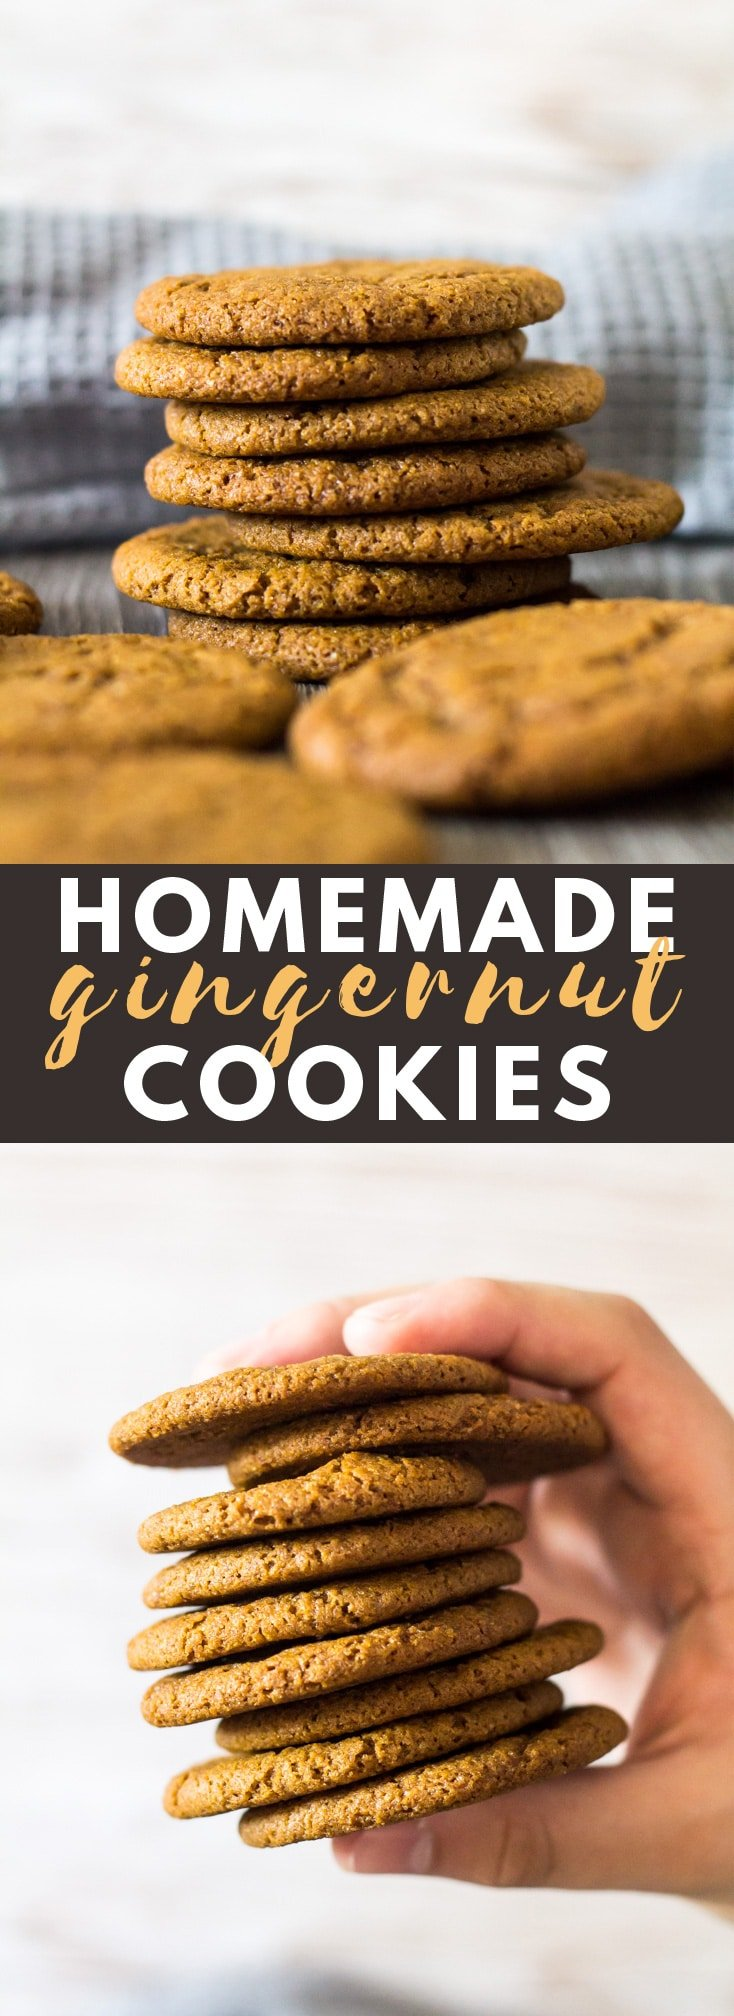 Homemade Gingernut Cookies - Deliciously crunchy and chewy ginger-spiced cookies that are better than store-bought. Perfect for dunking in tea or coffee! #gingercookies #cookierecipe #cookies #recipe